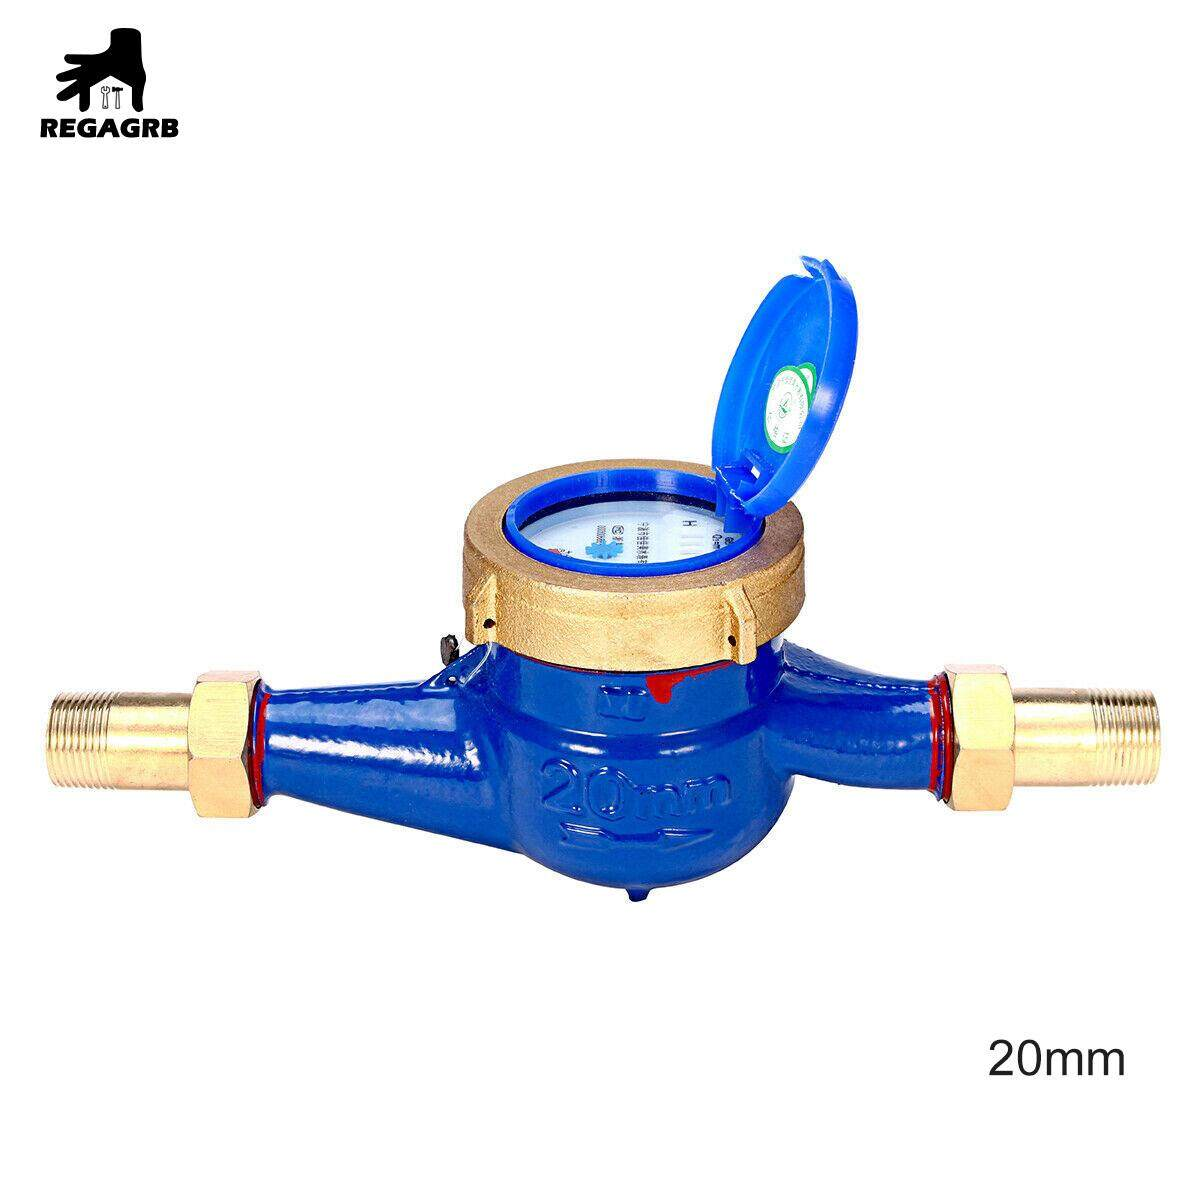 15mm/20mm Garden Home Brass Flow Measure Tape Cold Water Meter Counter Tools